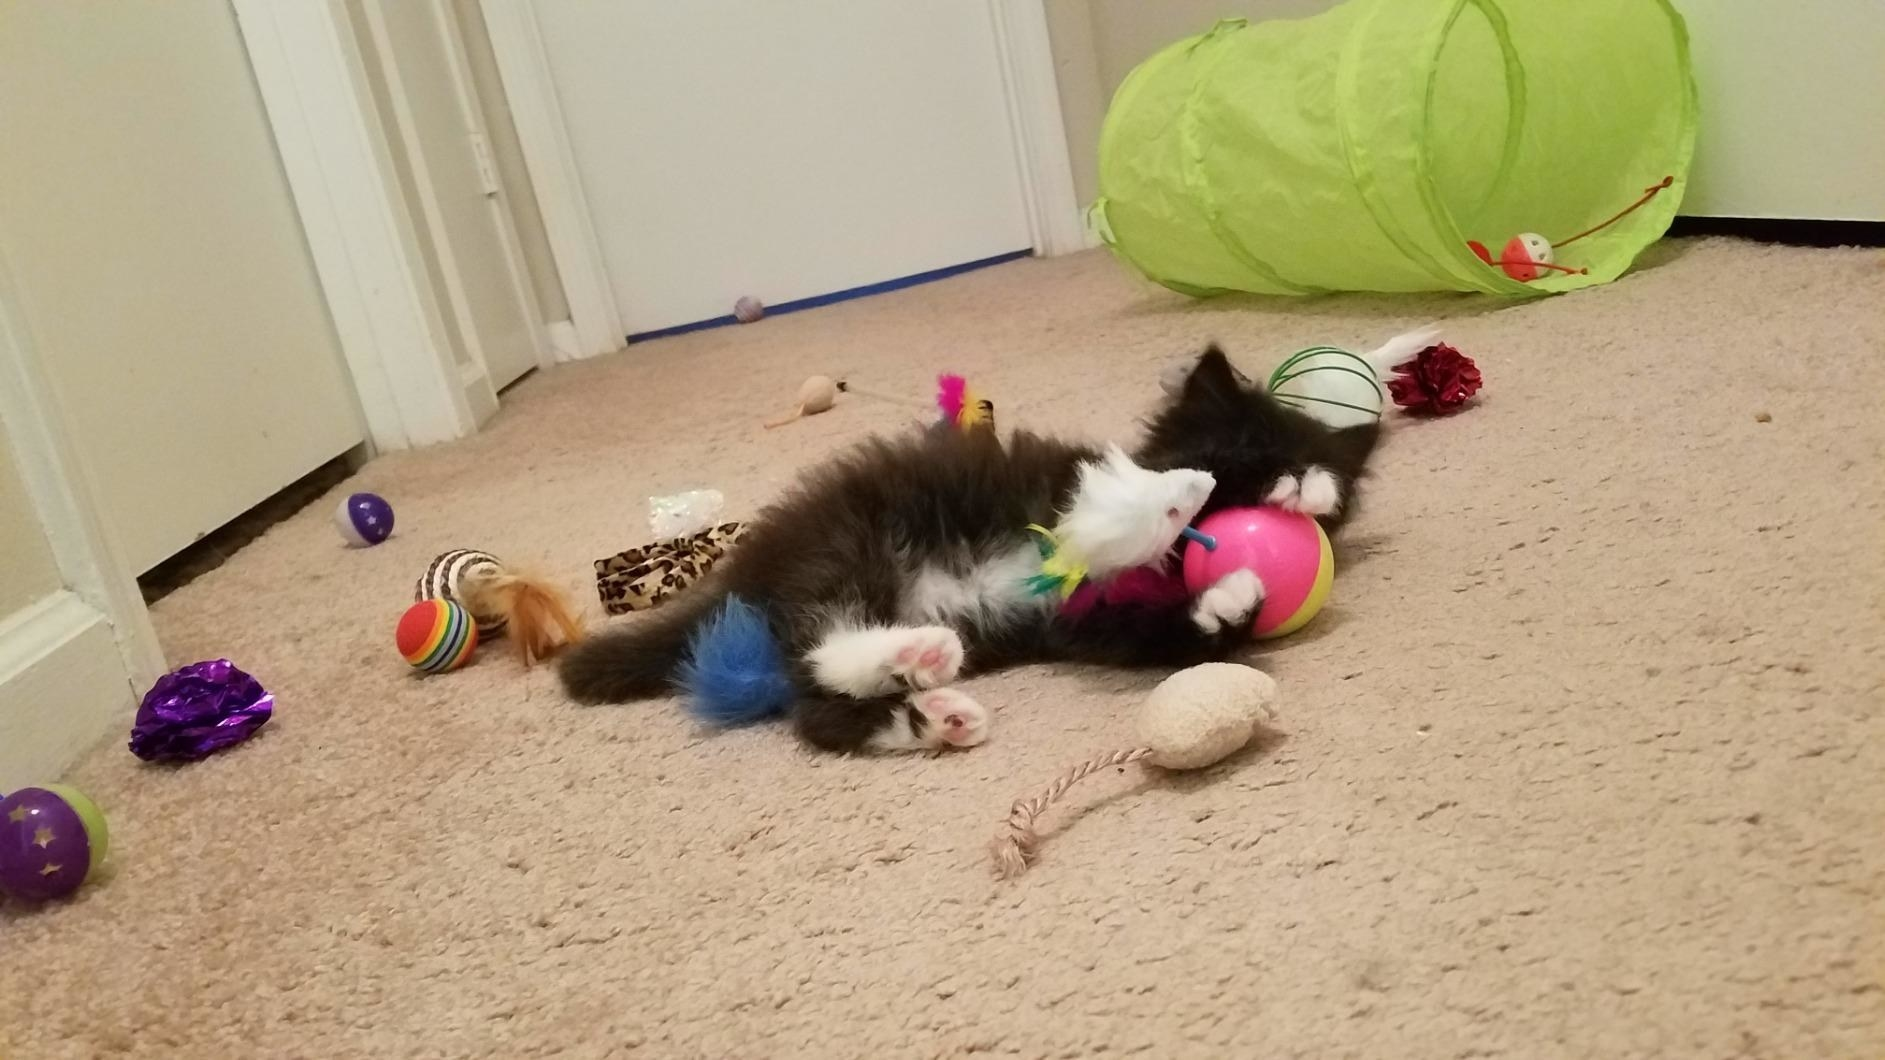 A kitten surrounded by toys